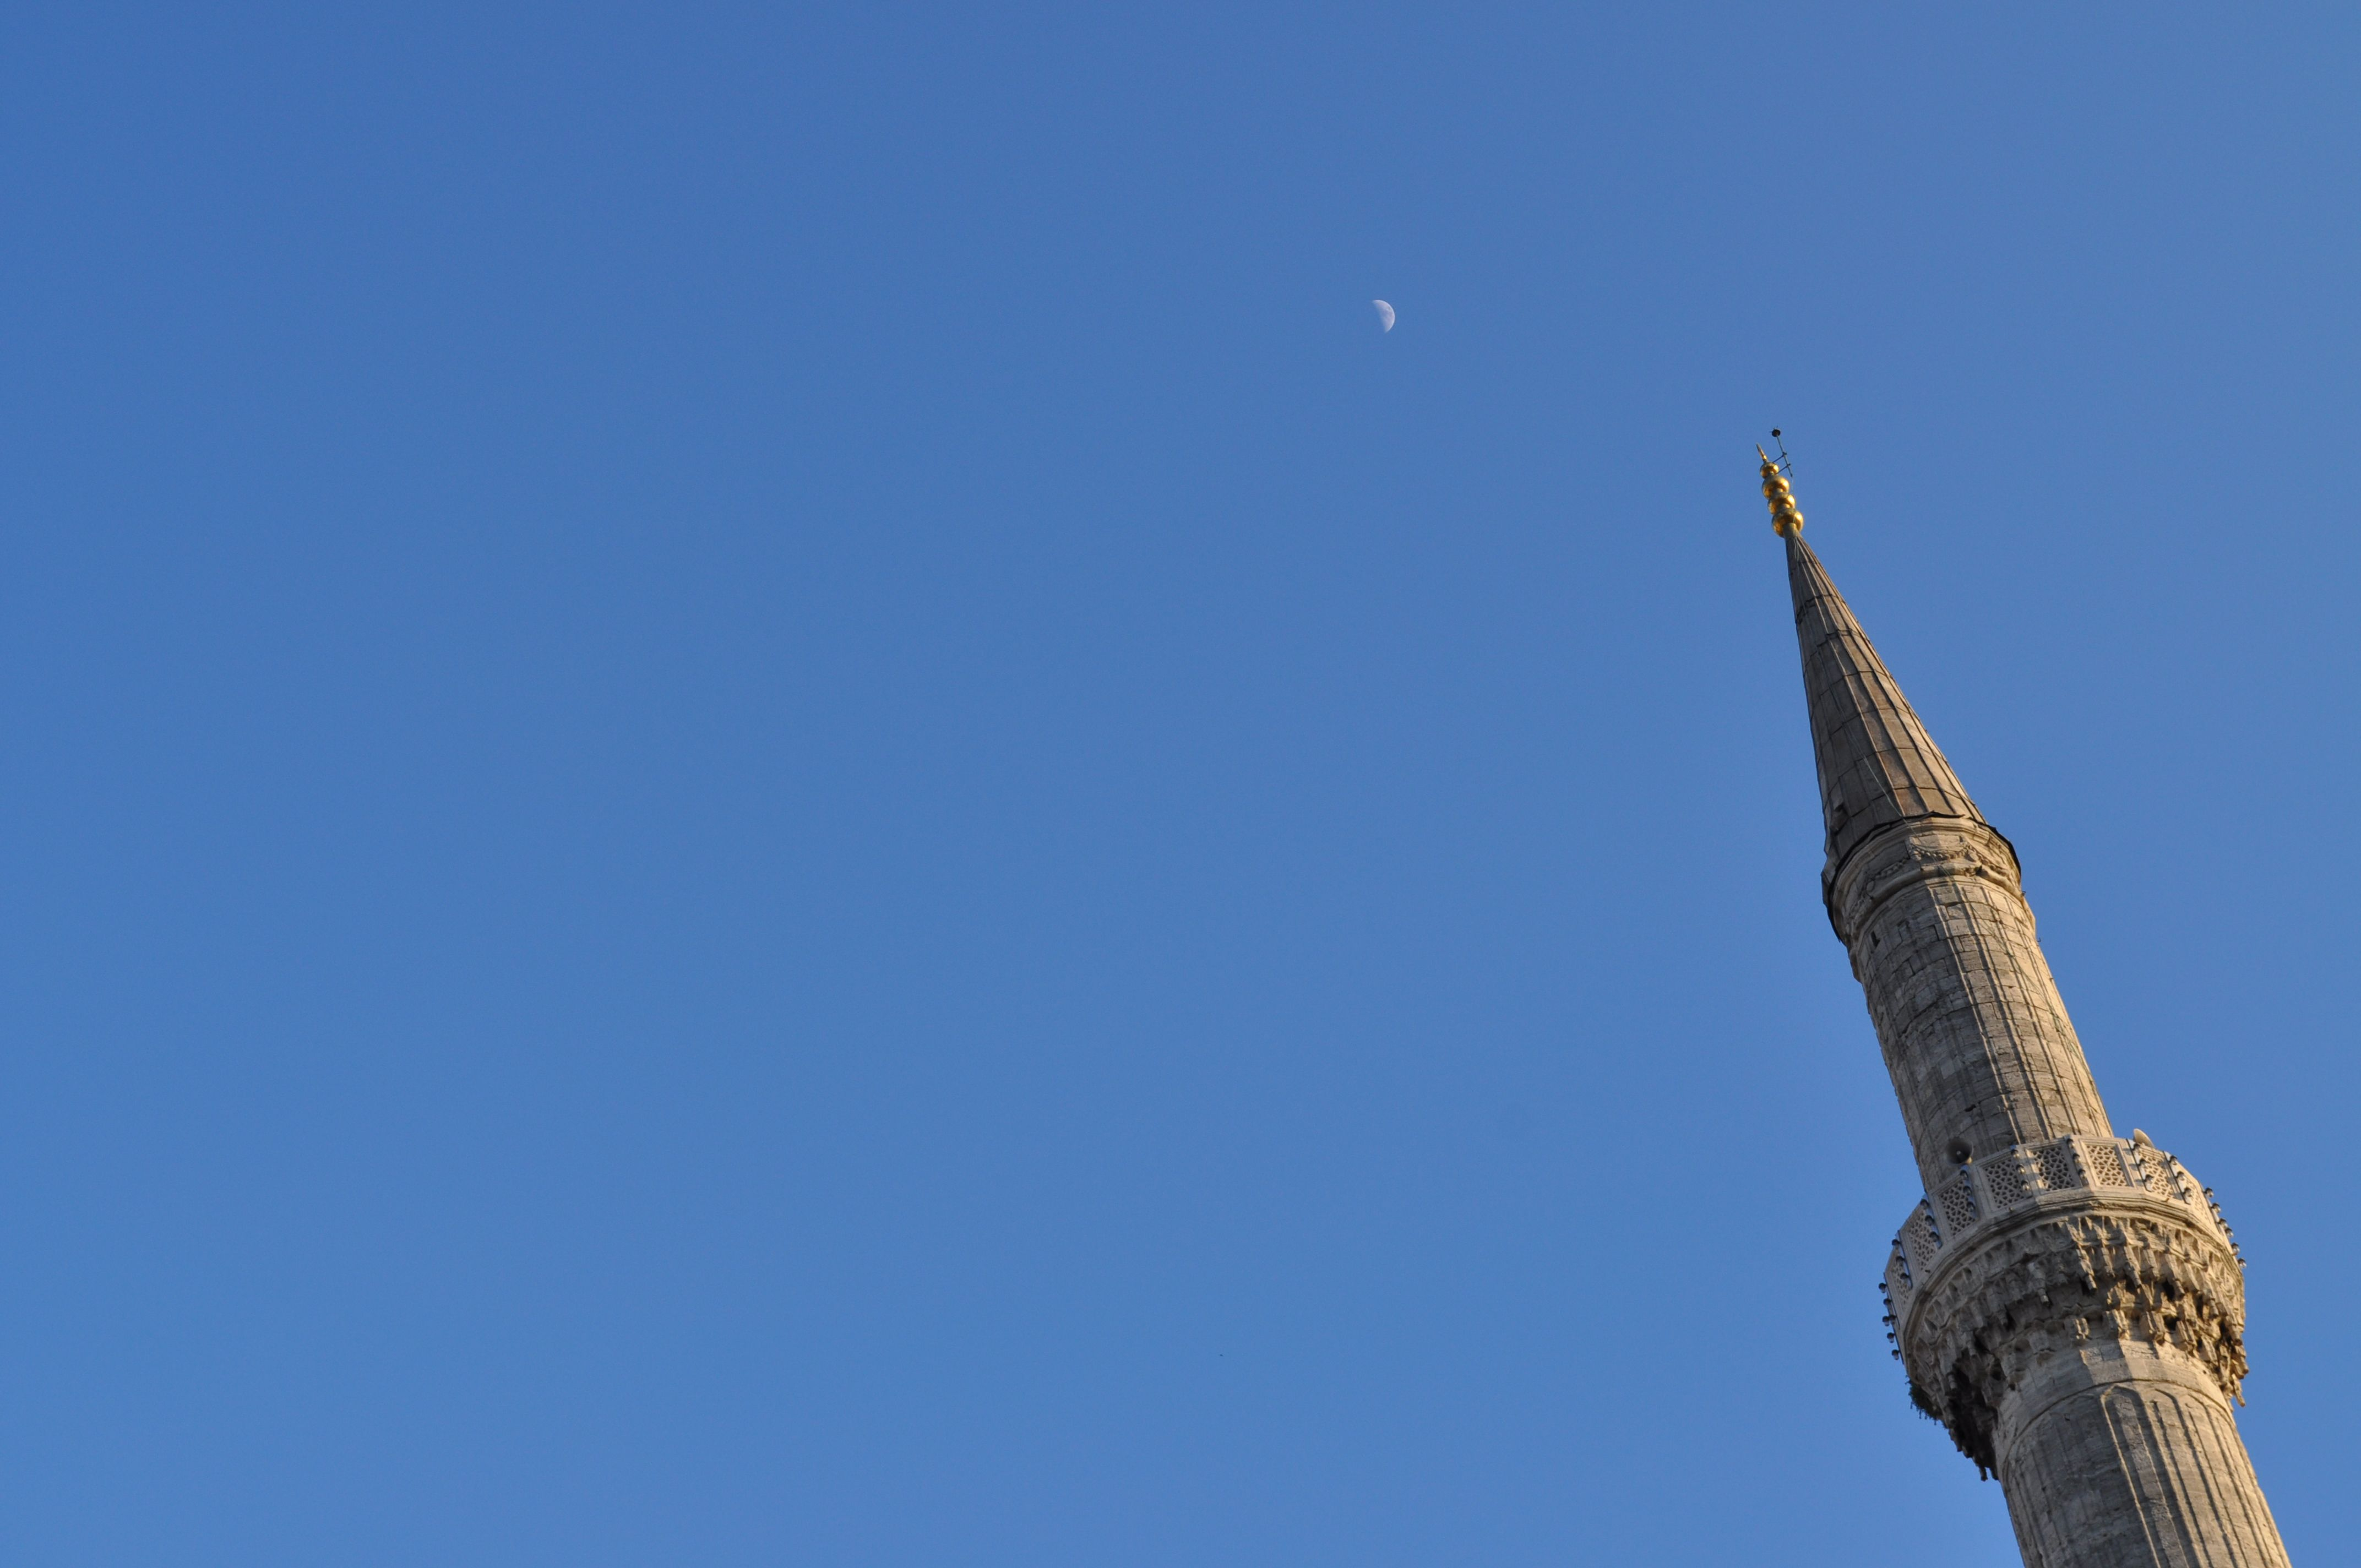 A Minaret From The Sultan Ahmed Mosque